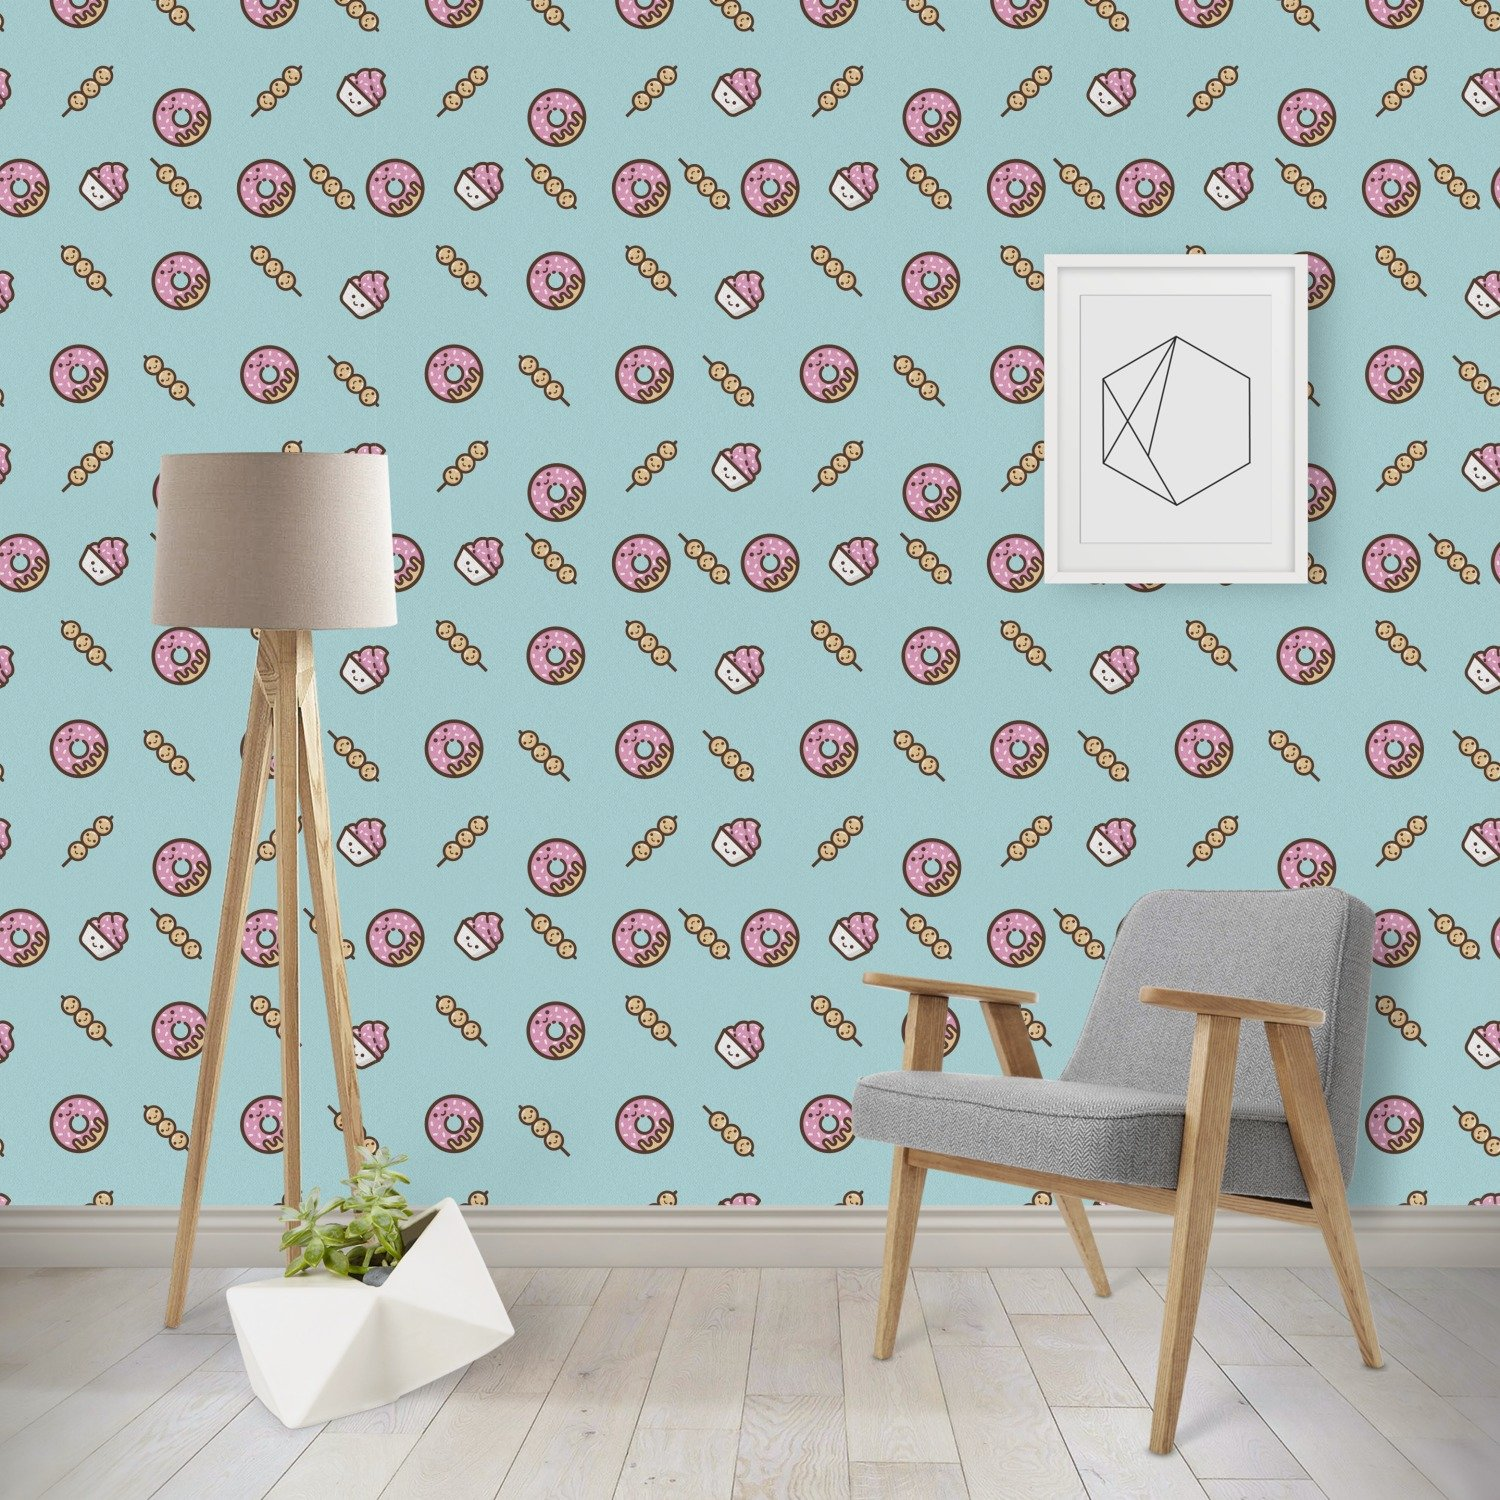 Amazon.com: Donuts Wallpaper & Surface Covering (Peel & Stick 24\